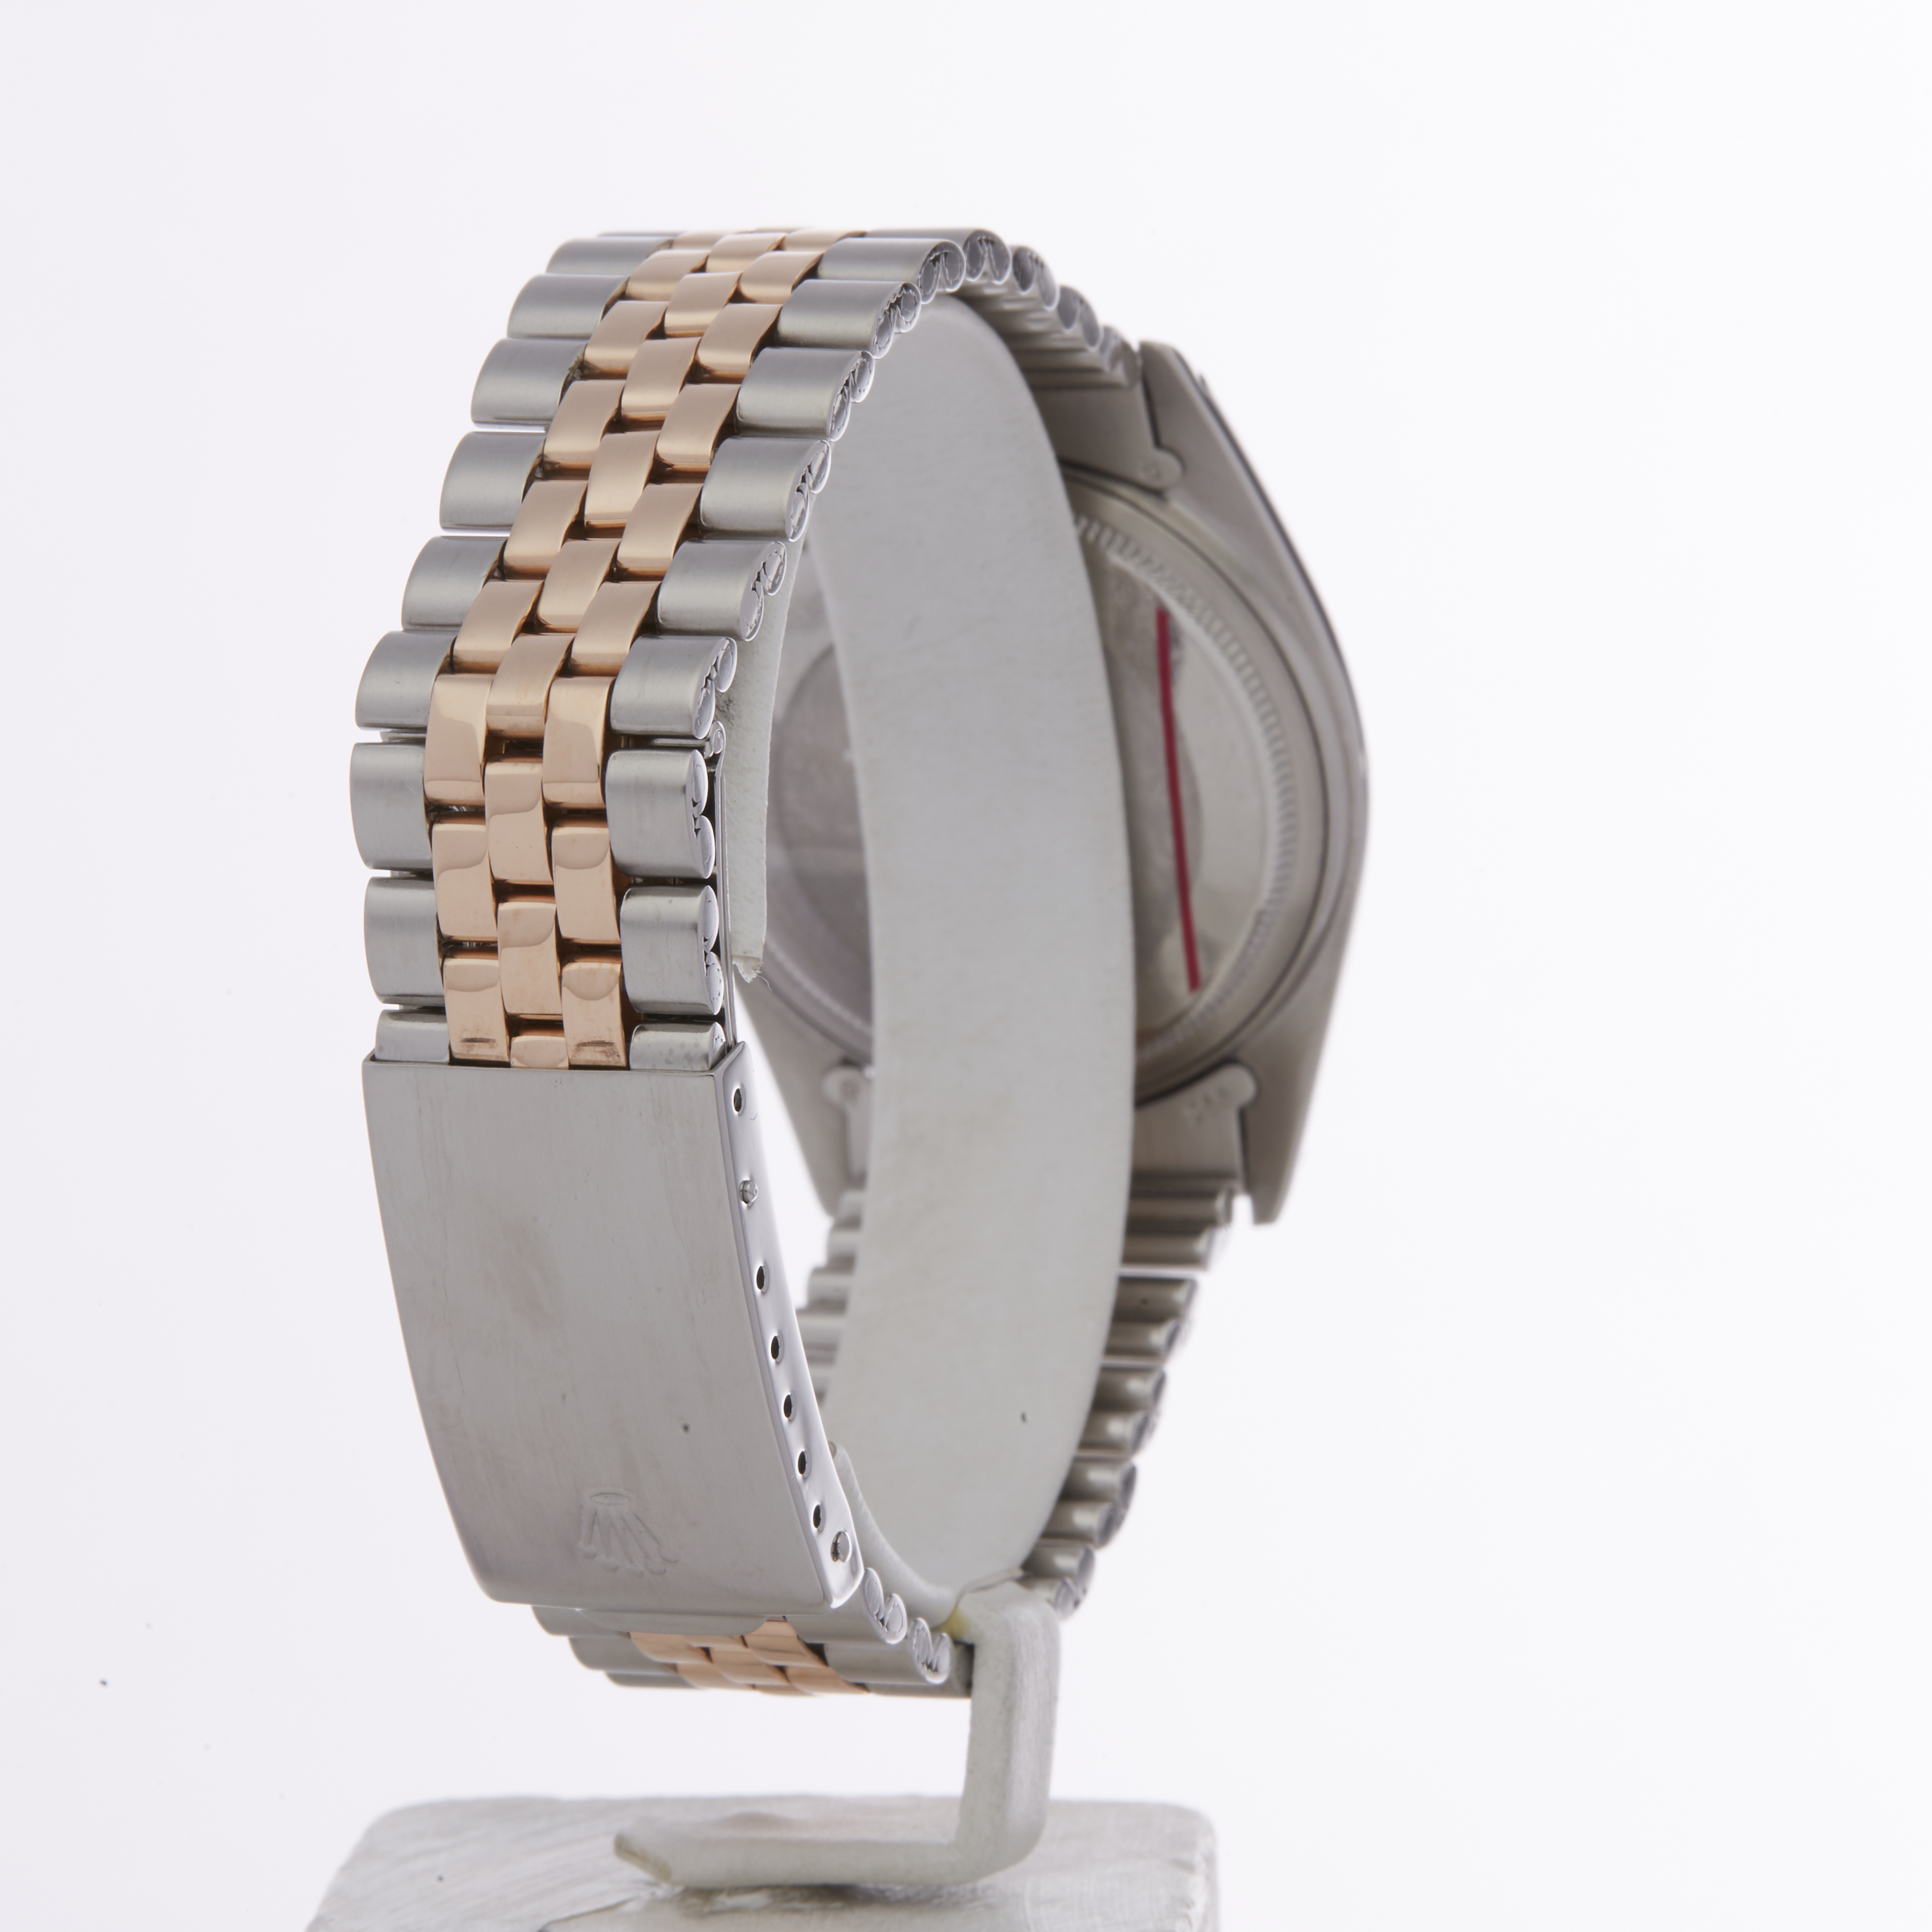 Rolex Datejust 36 1601 Men Rose Gold & Stainless Steel Watch - Image 3 of 6